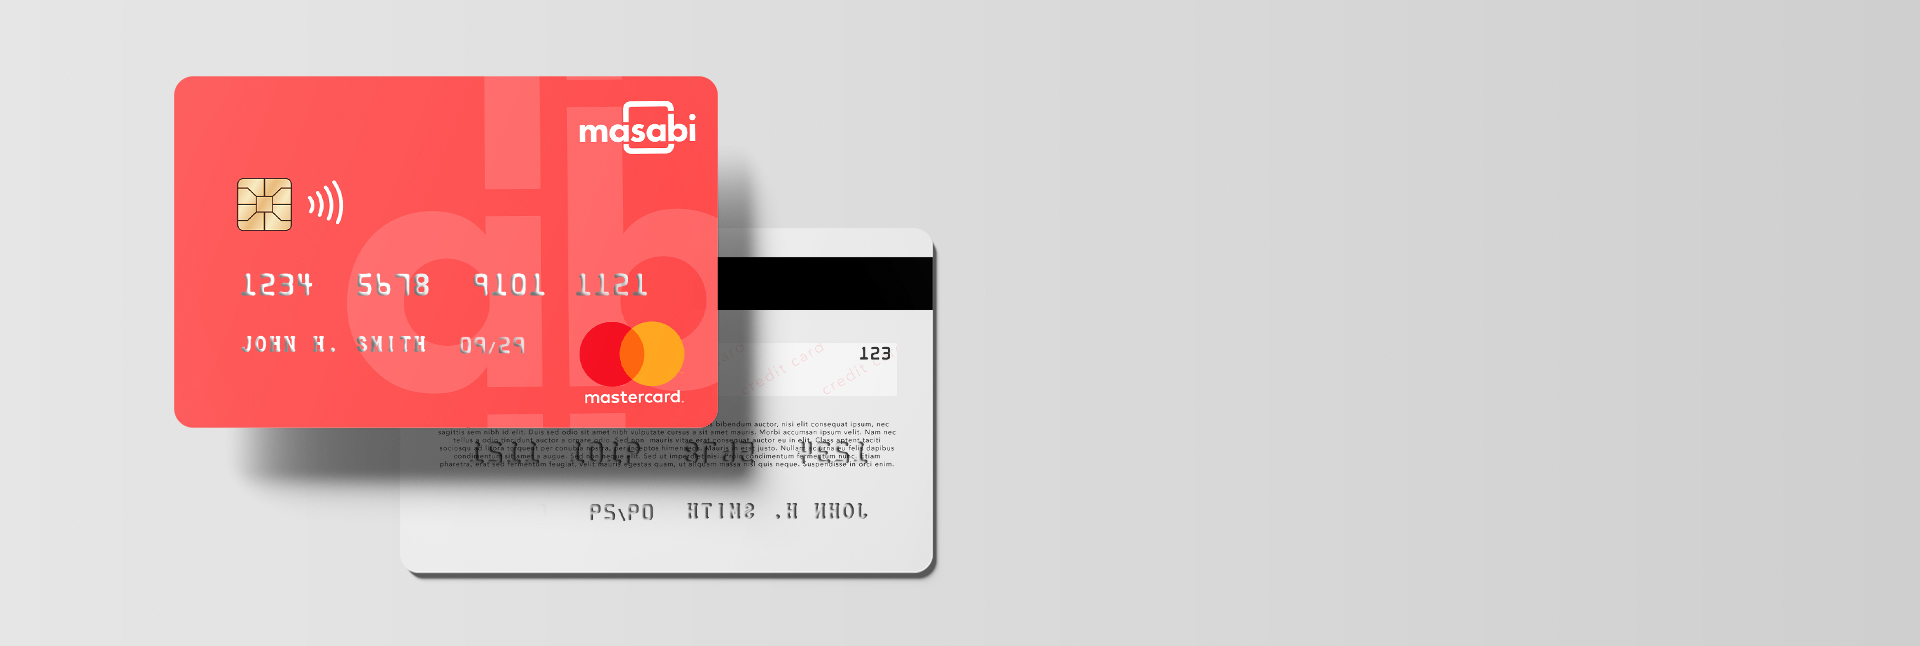 Masabi-EMV-BankCard-Light (2)